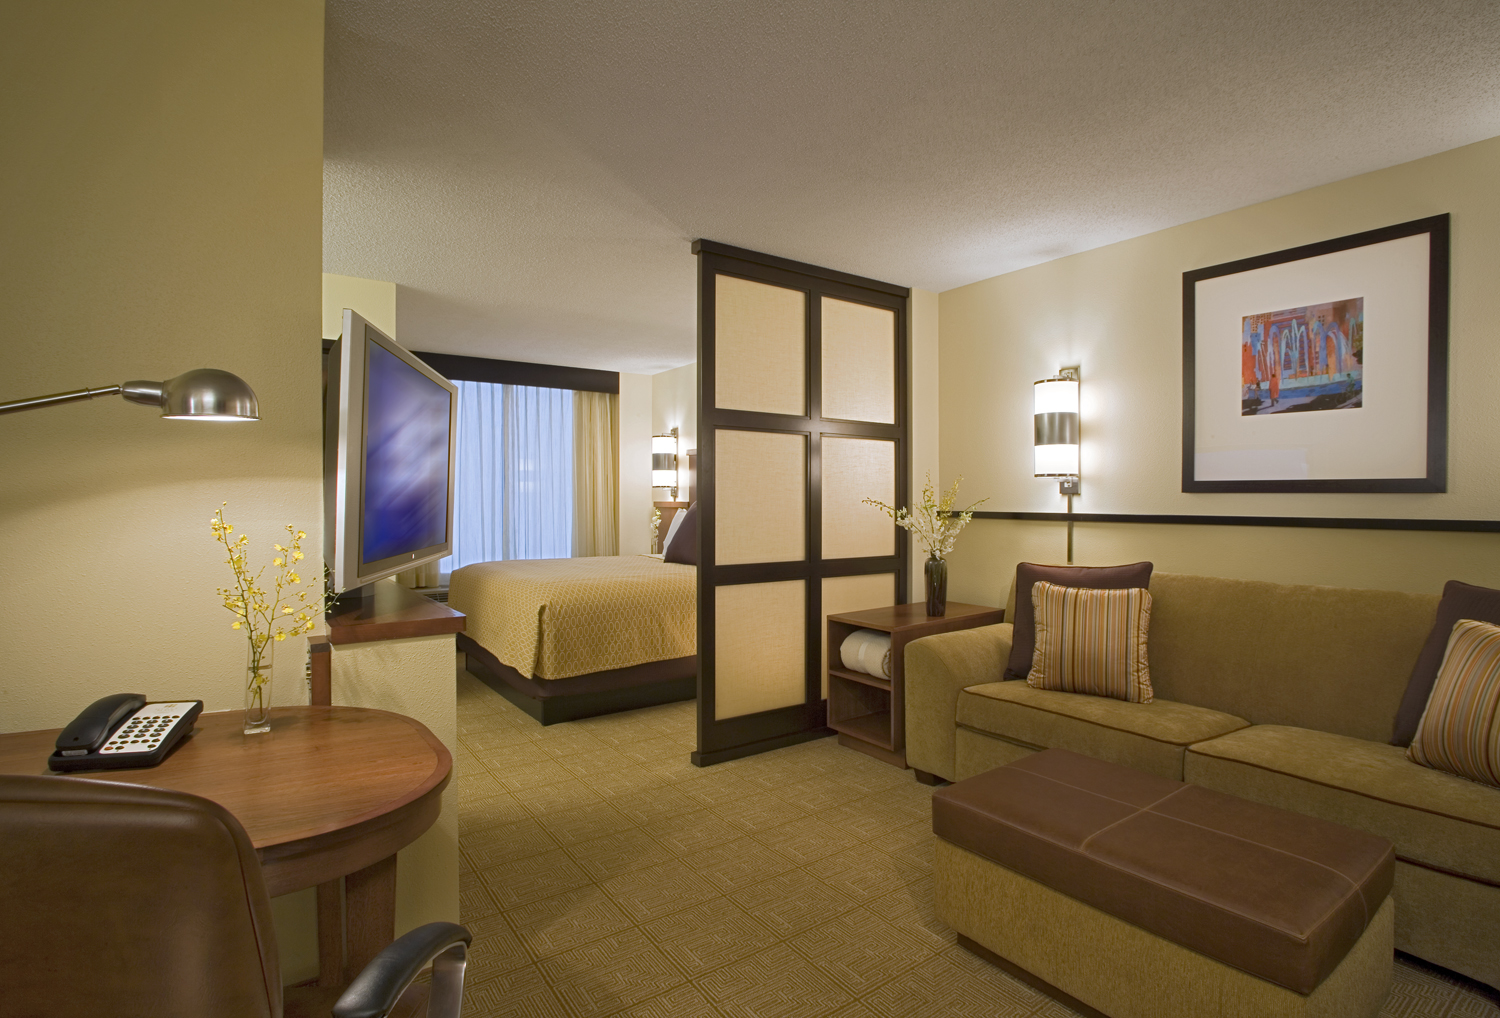 http://www.memorialcoliseum.com/images/Images/Where_to_Stay_Images/Hyatt_Place/King_Guest_Room.jpg